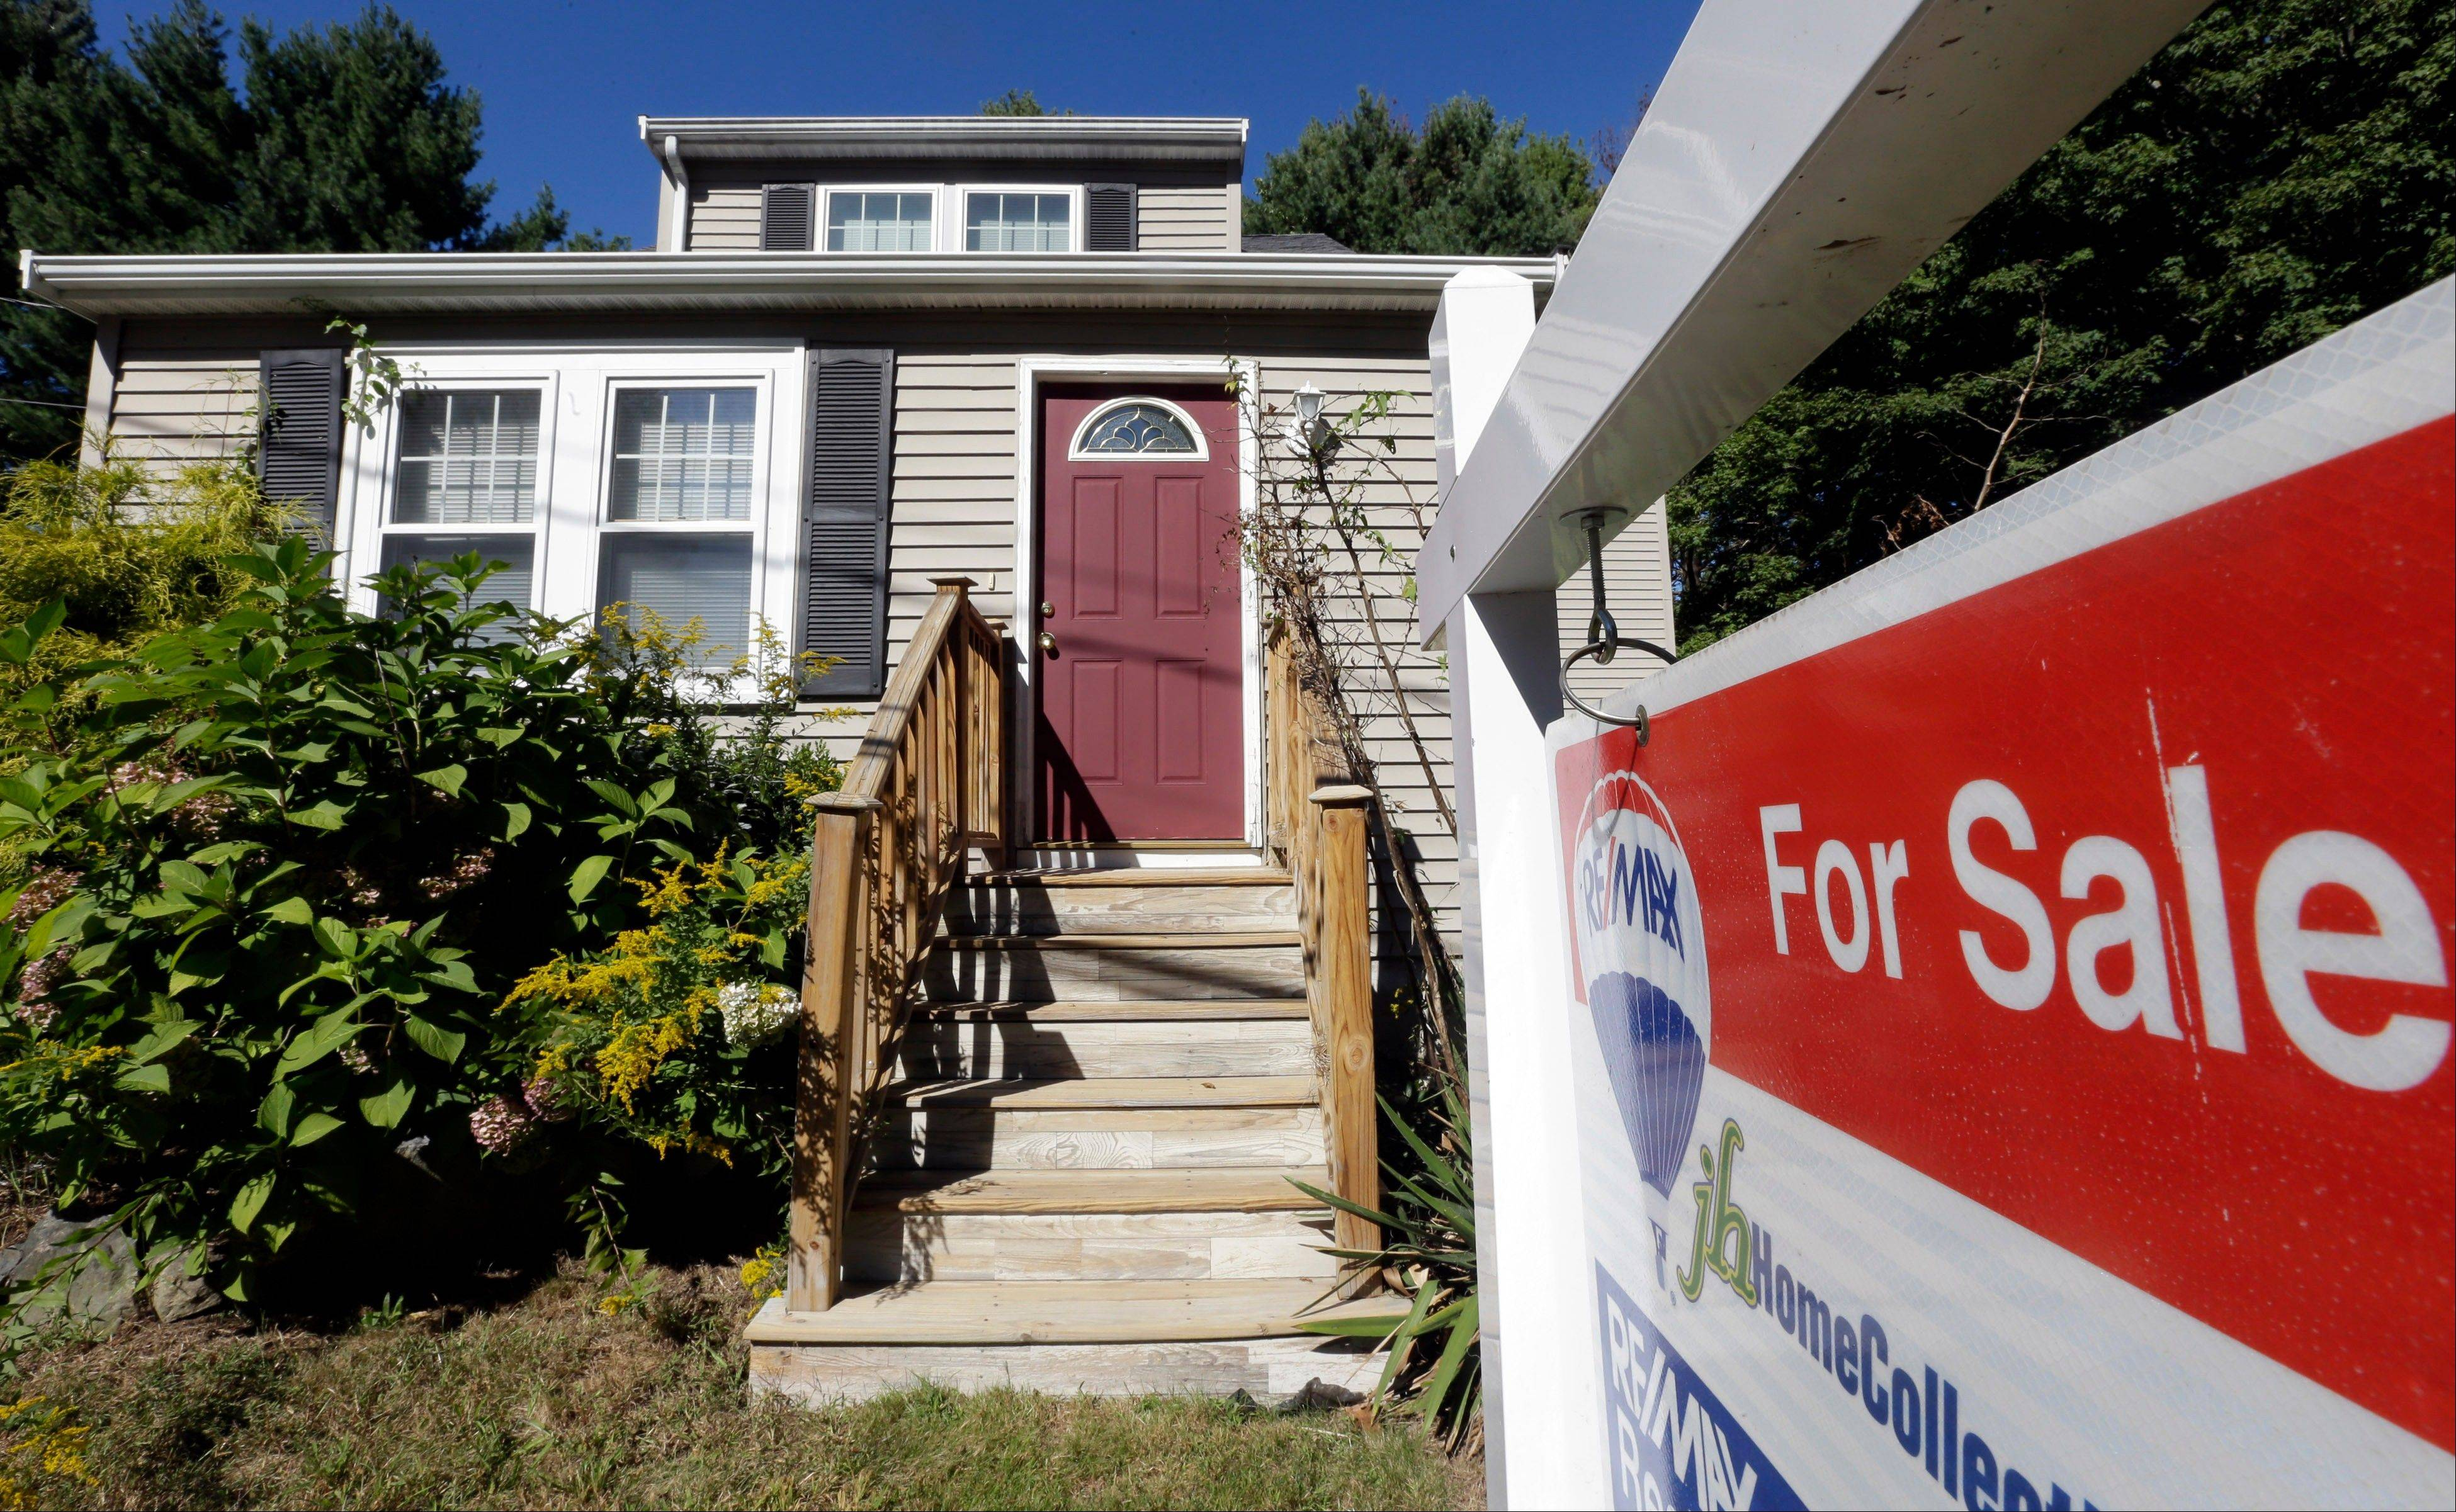 A for sale sign hangs in front of a house in Walpole, Mass. Average U.S. rates on fixed mortgages fell for the third straight week to their lowest point in three months, as a decline in consumer confidence and the onset of the government shutdown forced rates down.